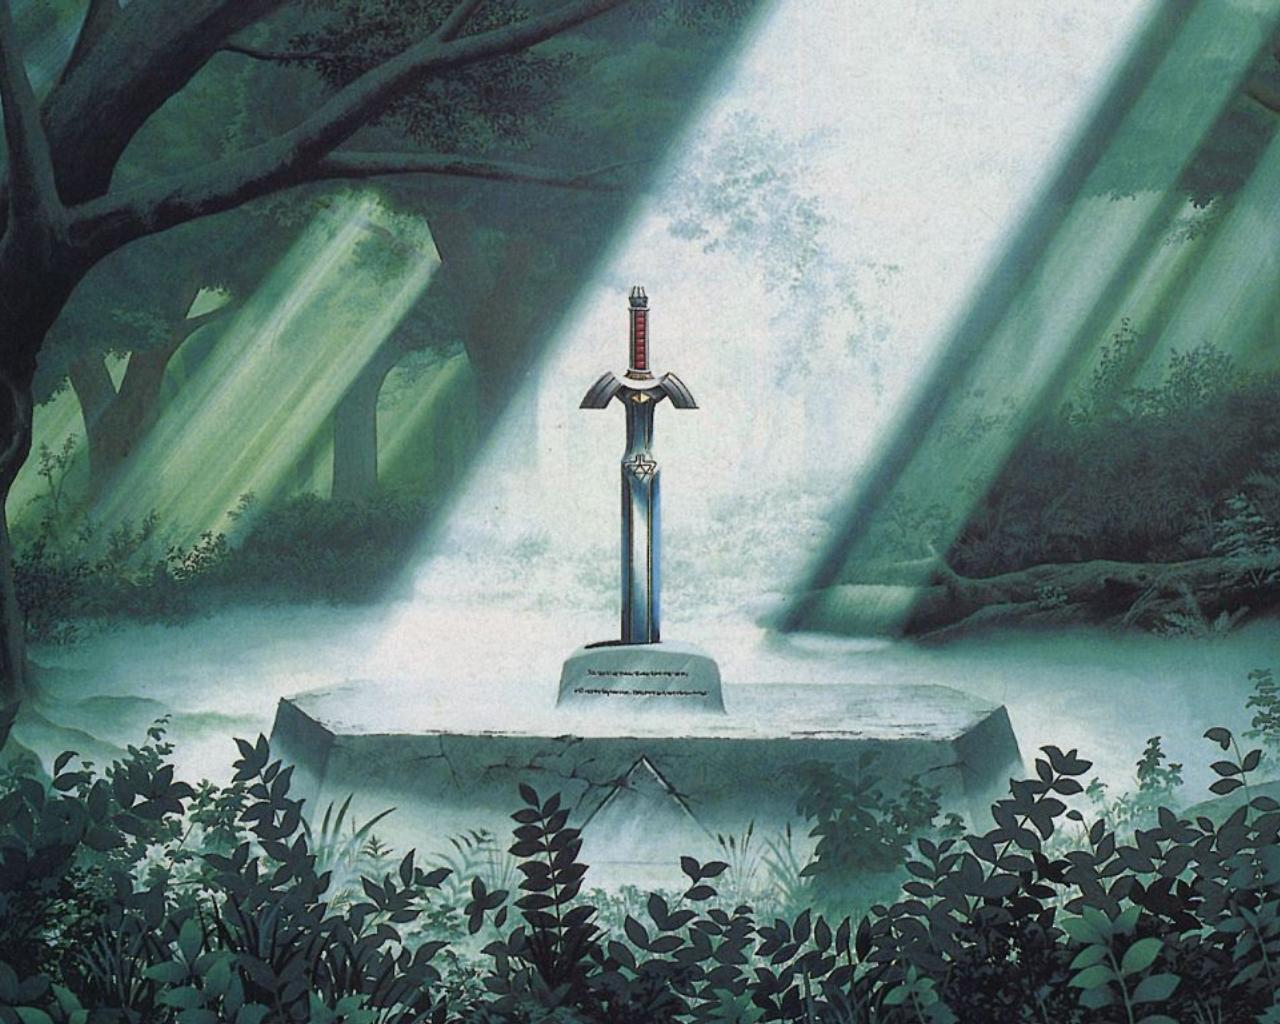 Master Sword Wallpaper Images amp Pictures   Becuo 1280x1024